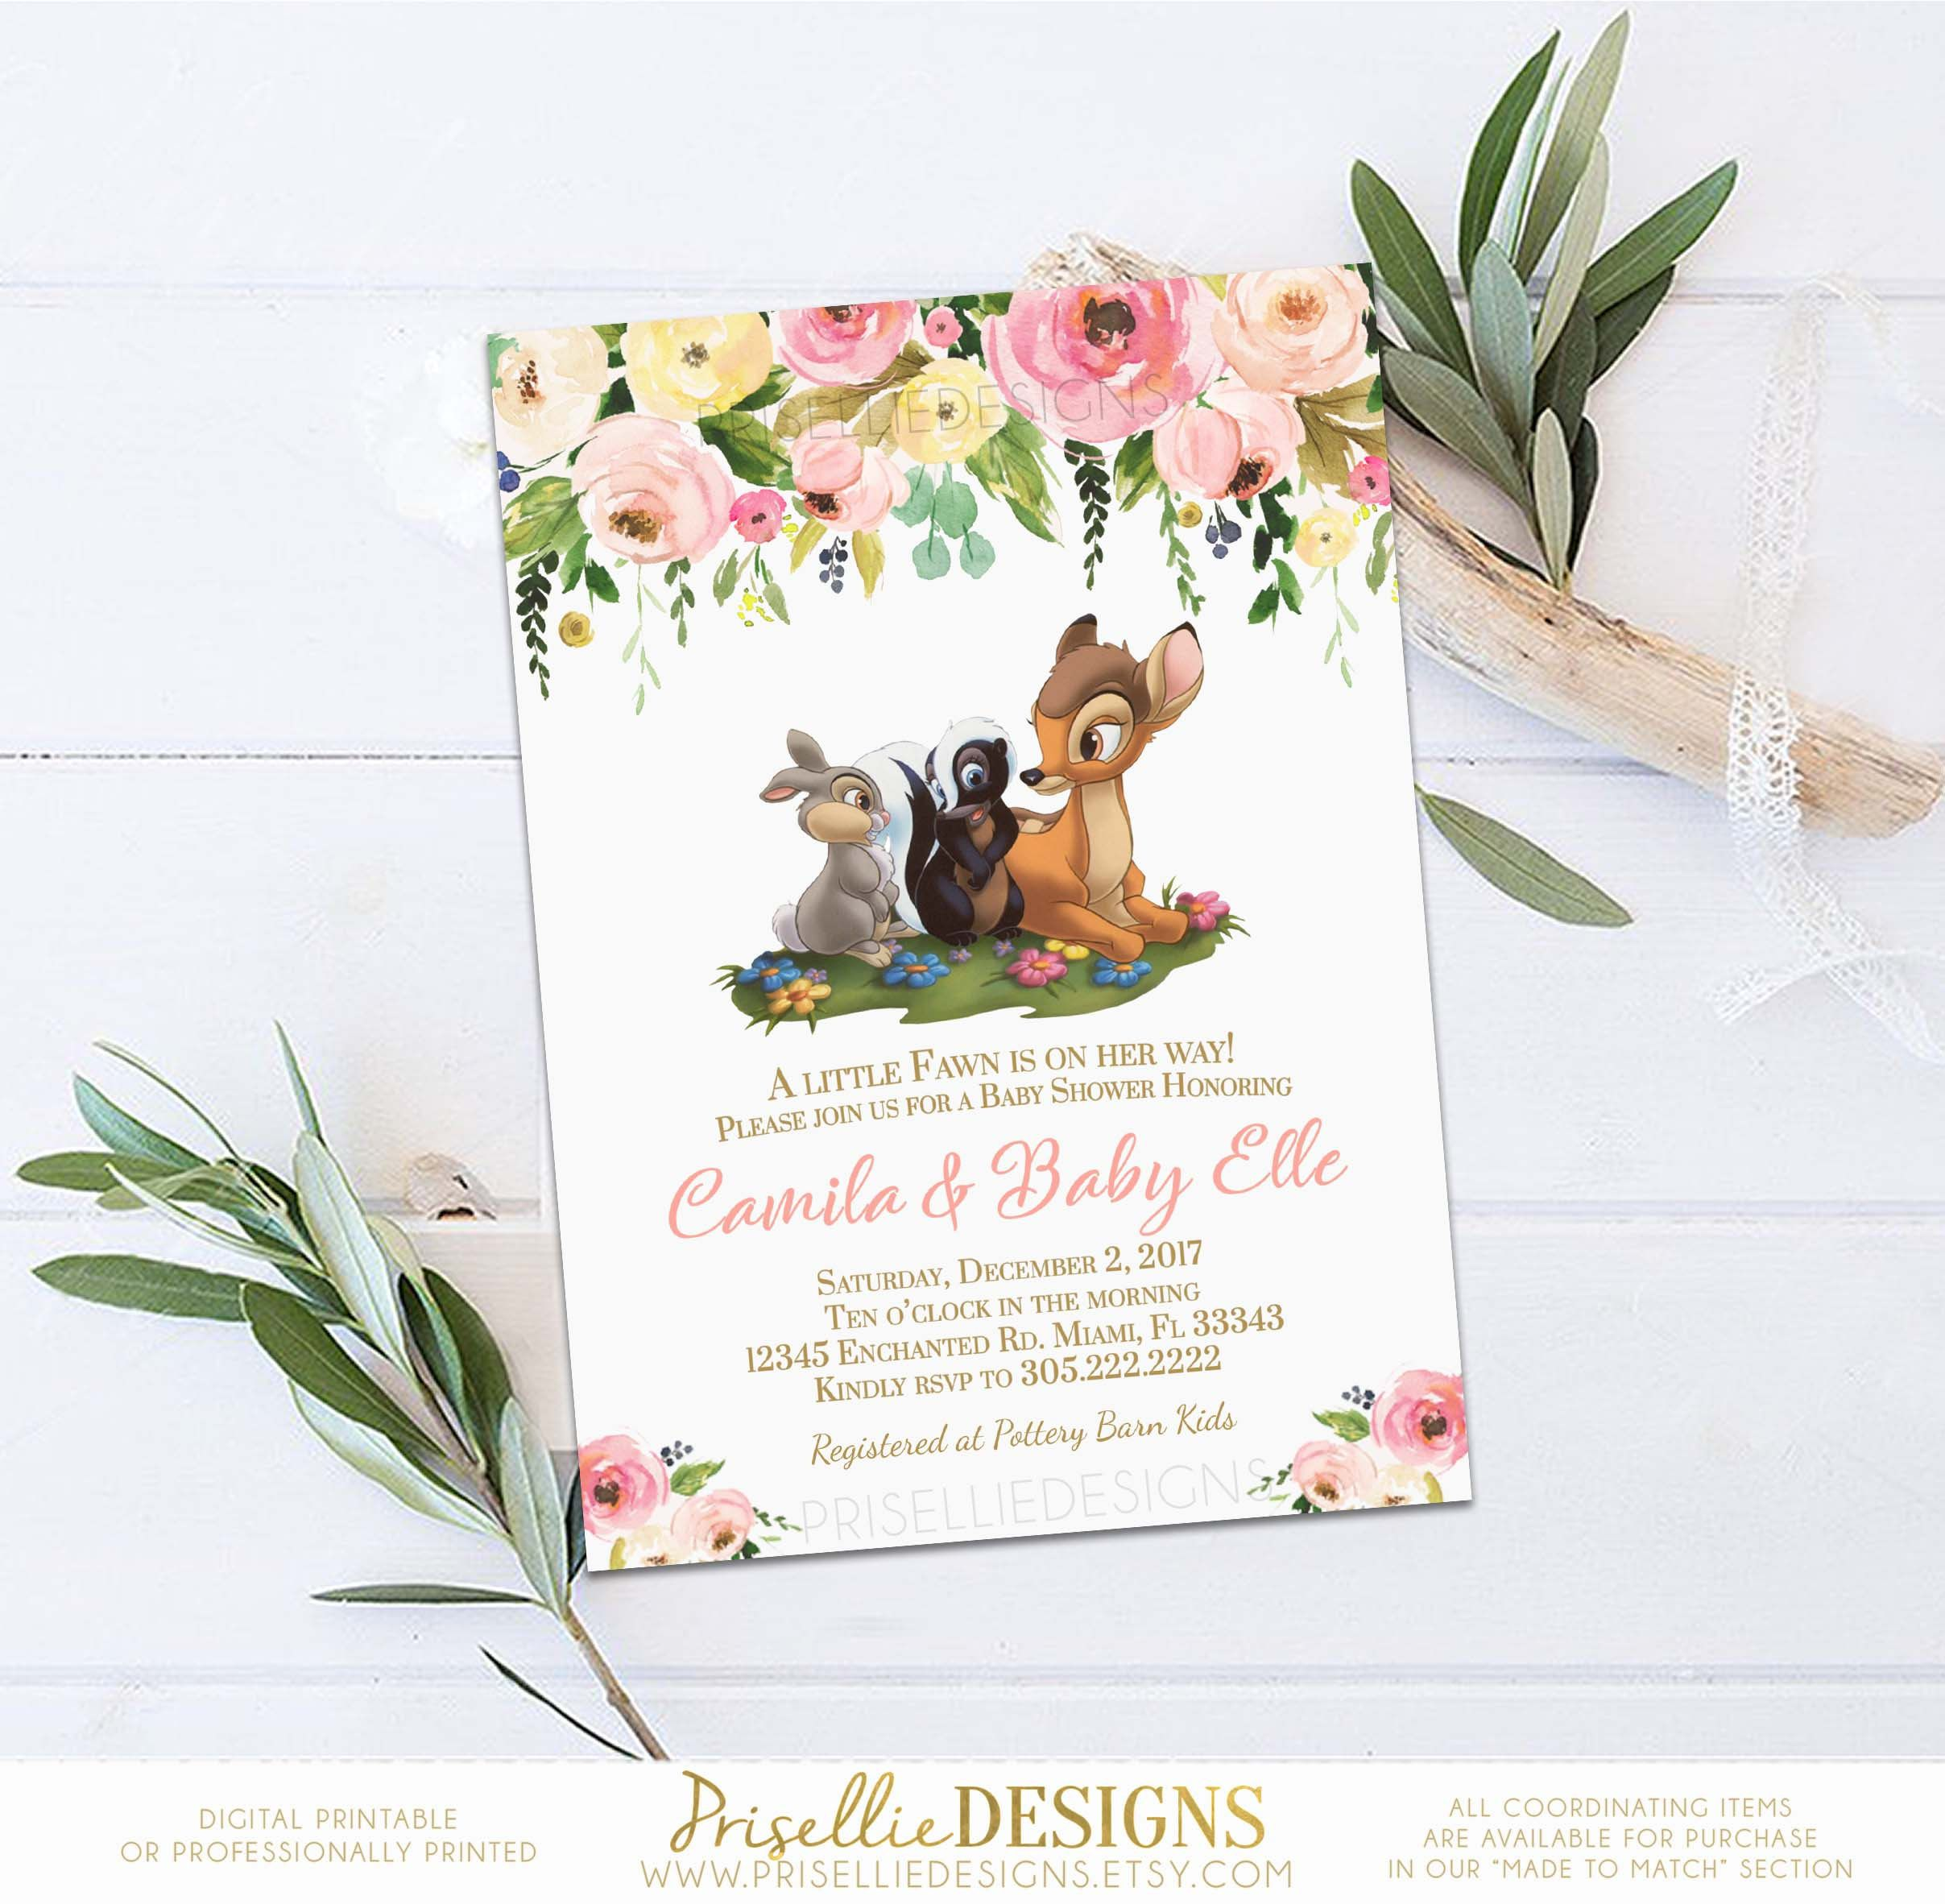 Bambi Baby Shower Invitation, Bambi Baby Shower Invitation Girl ...